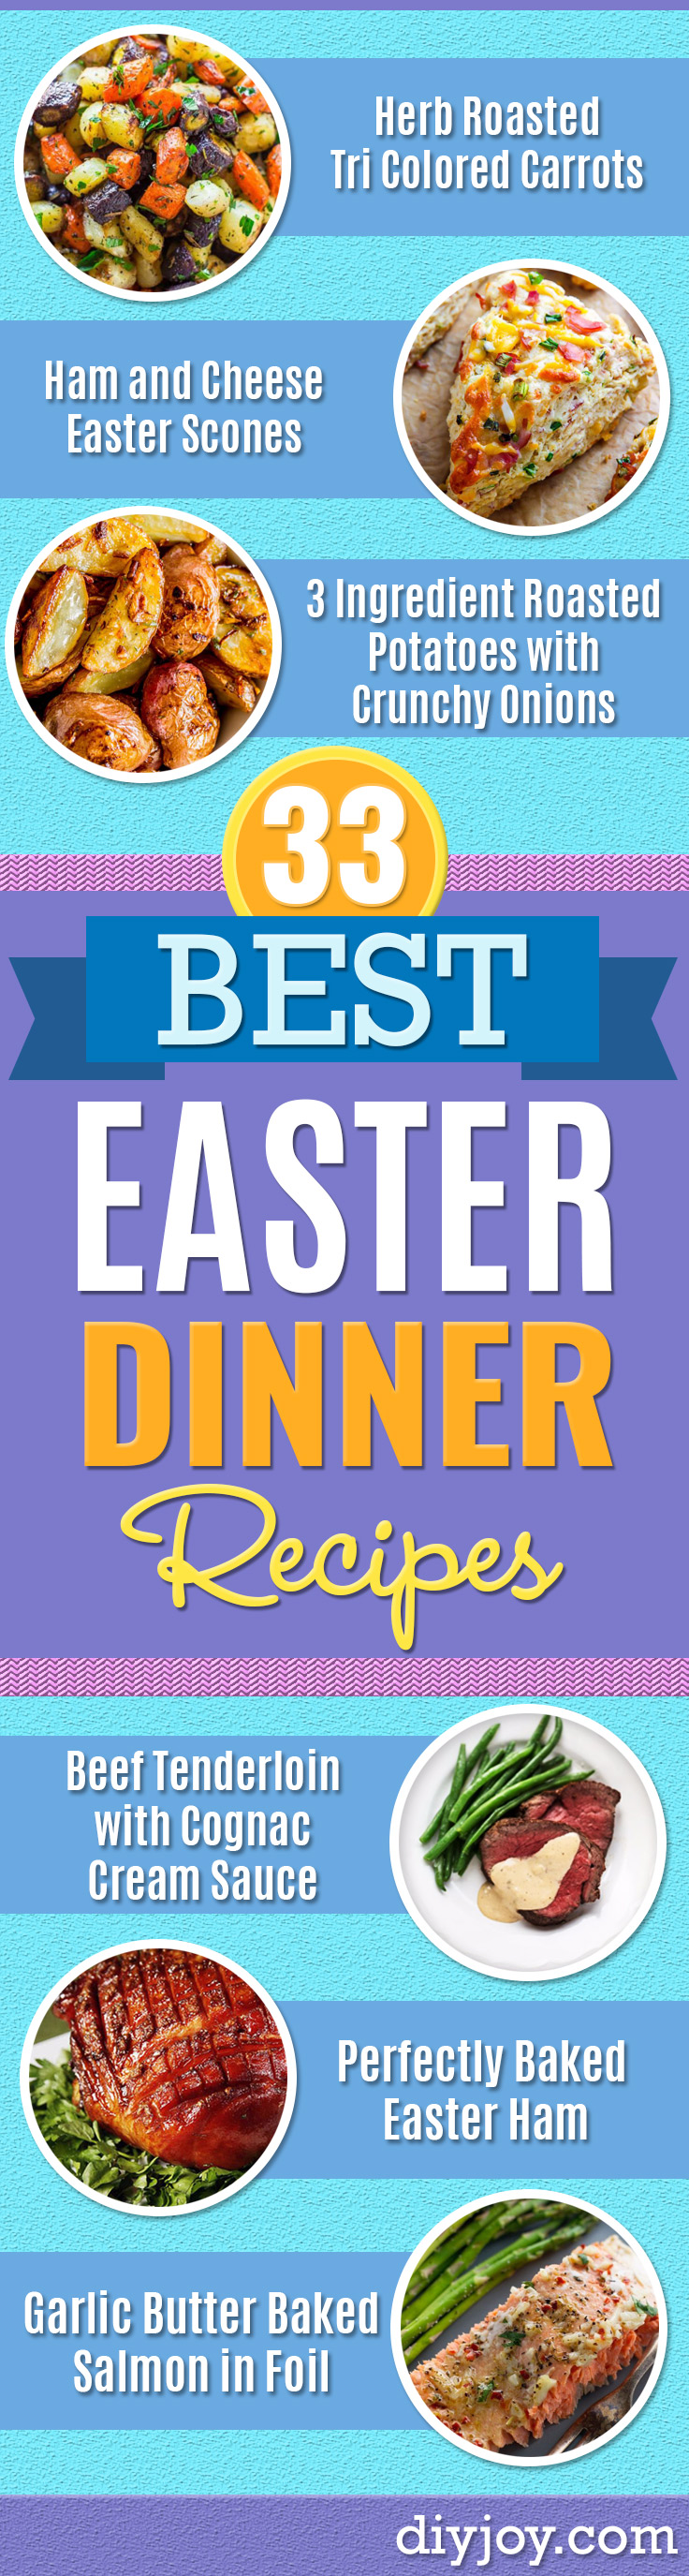 Best Easter Dinner Recipes - Easy Recipe Ideas for Easter Dinners and Holiday Meals for Families - Side Dishes, Slow Cooker Recipe Tutorials, Main Courses, Traditional Meat, Vegetable and Dessert Ideas - Desserts, Pies, Cakes, Ham and Beef, Lamb - DIY Projects and Crafts by DIY JOY